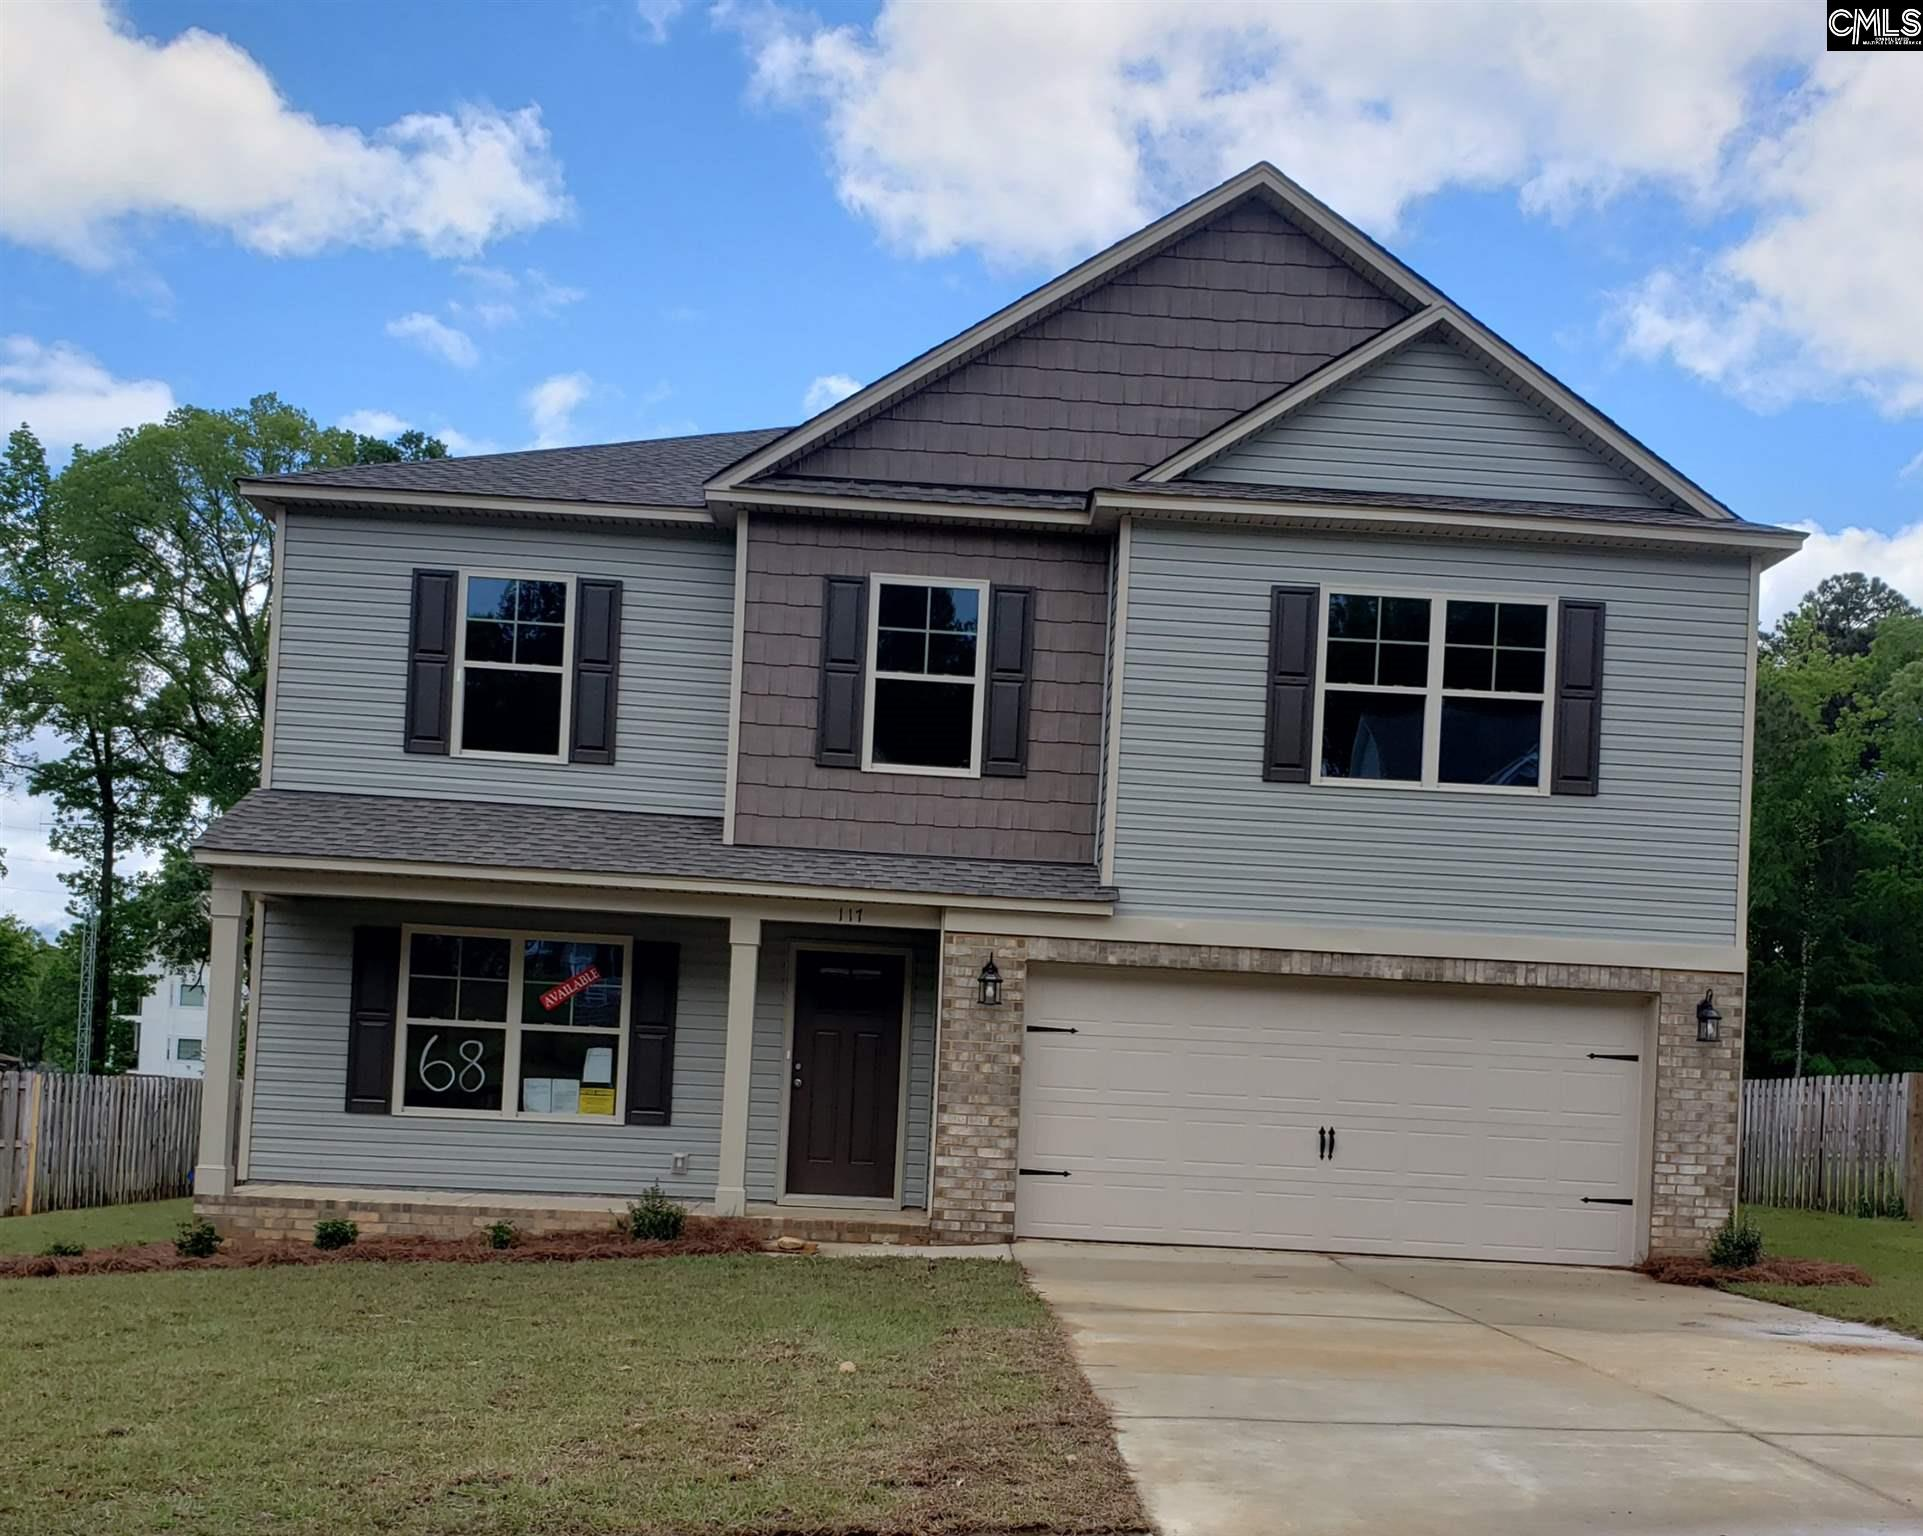 117 Sunsation Chapin, SC 29036-6006